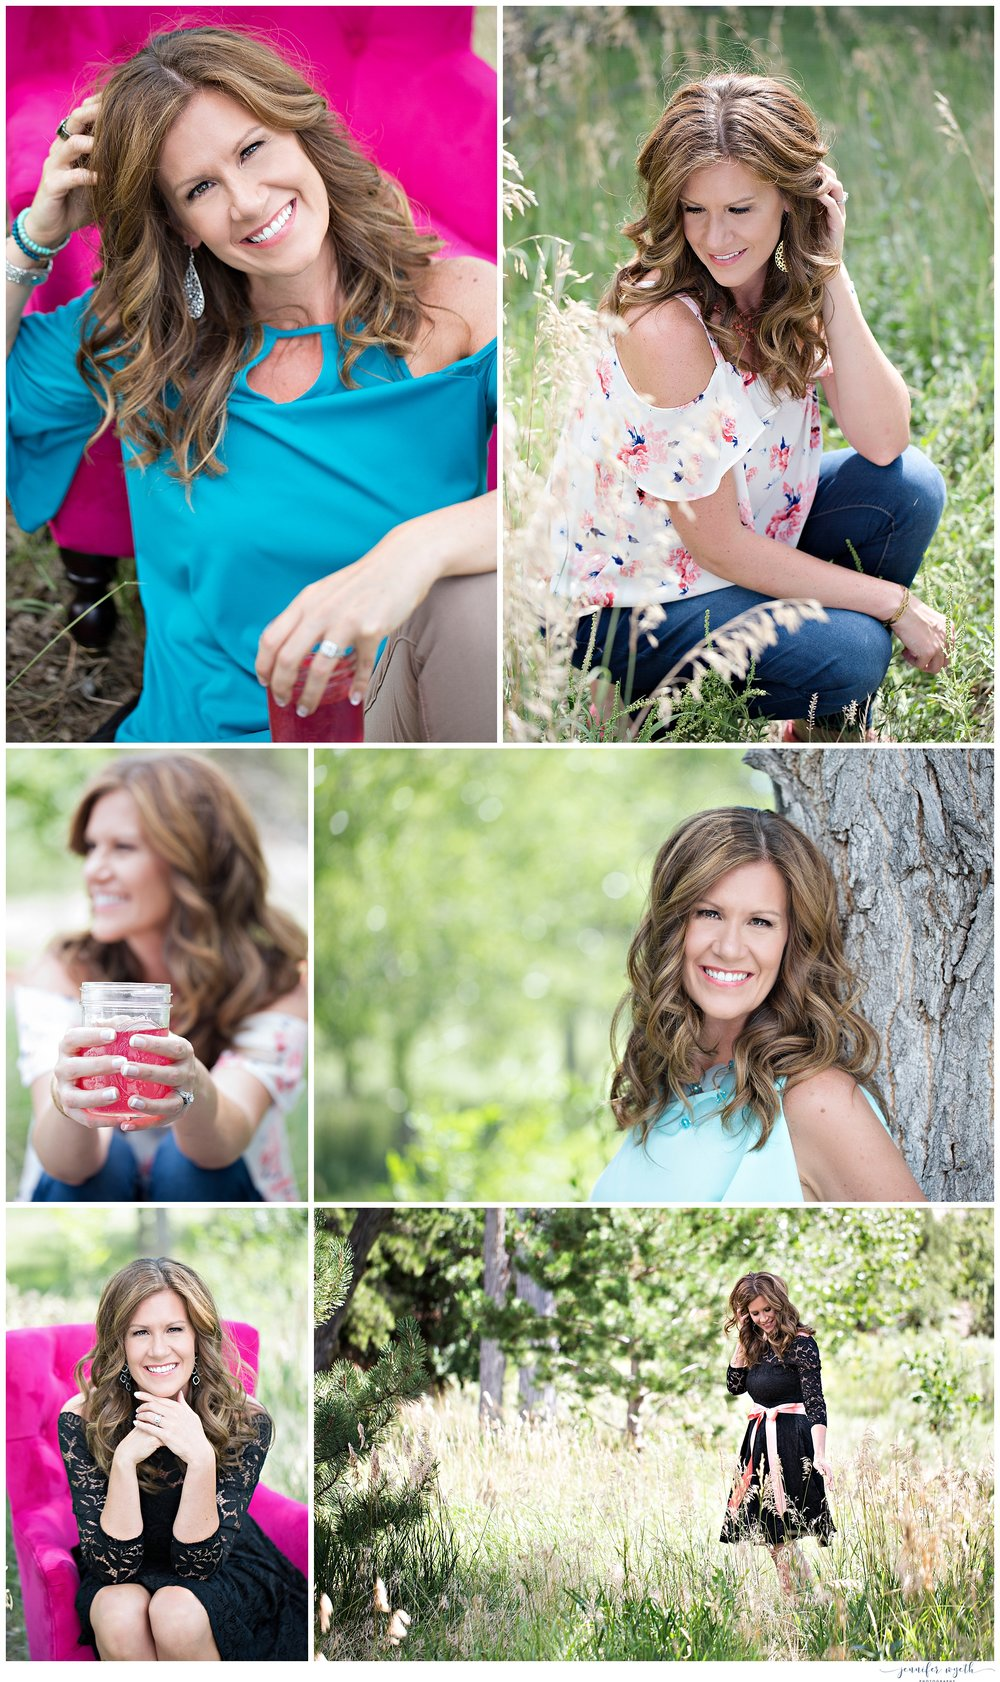 Jennifer-Wyeth-photography-senior-pictures-colorado-springs-photographer_0244.jpg